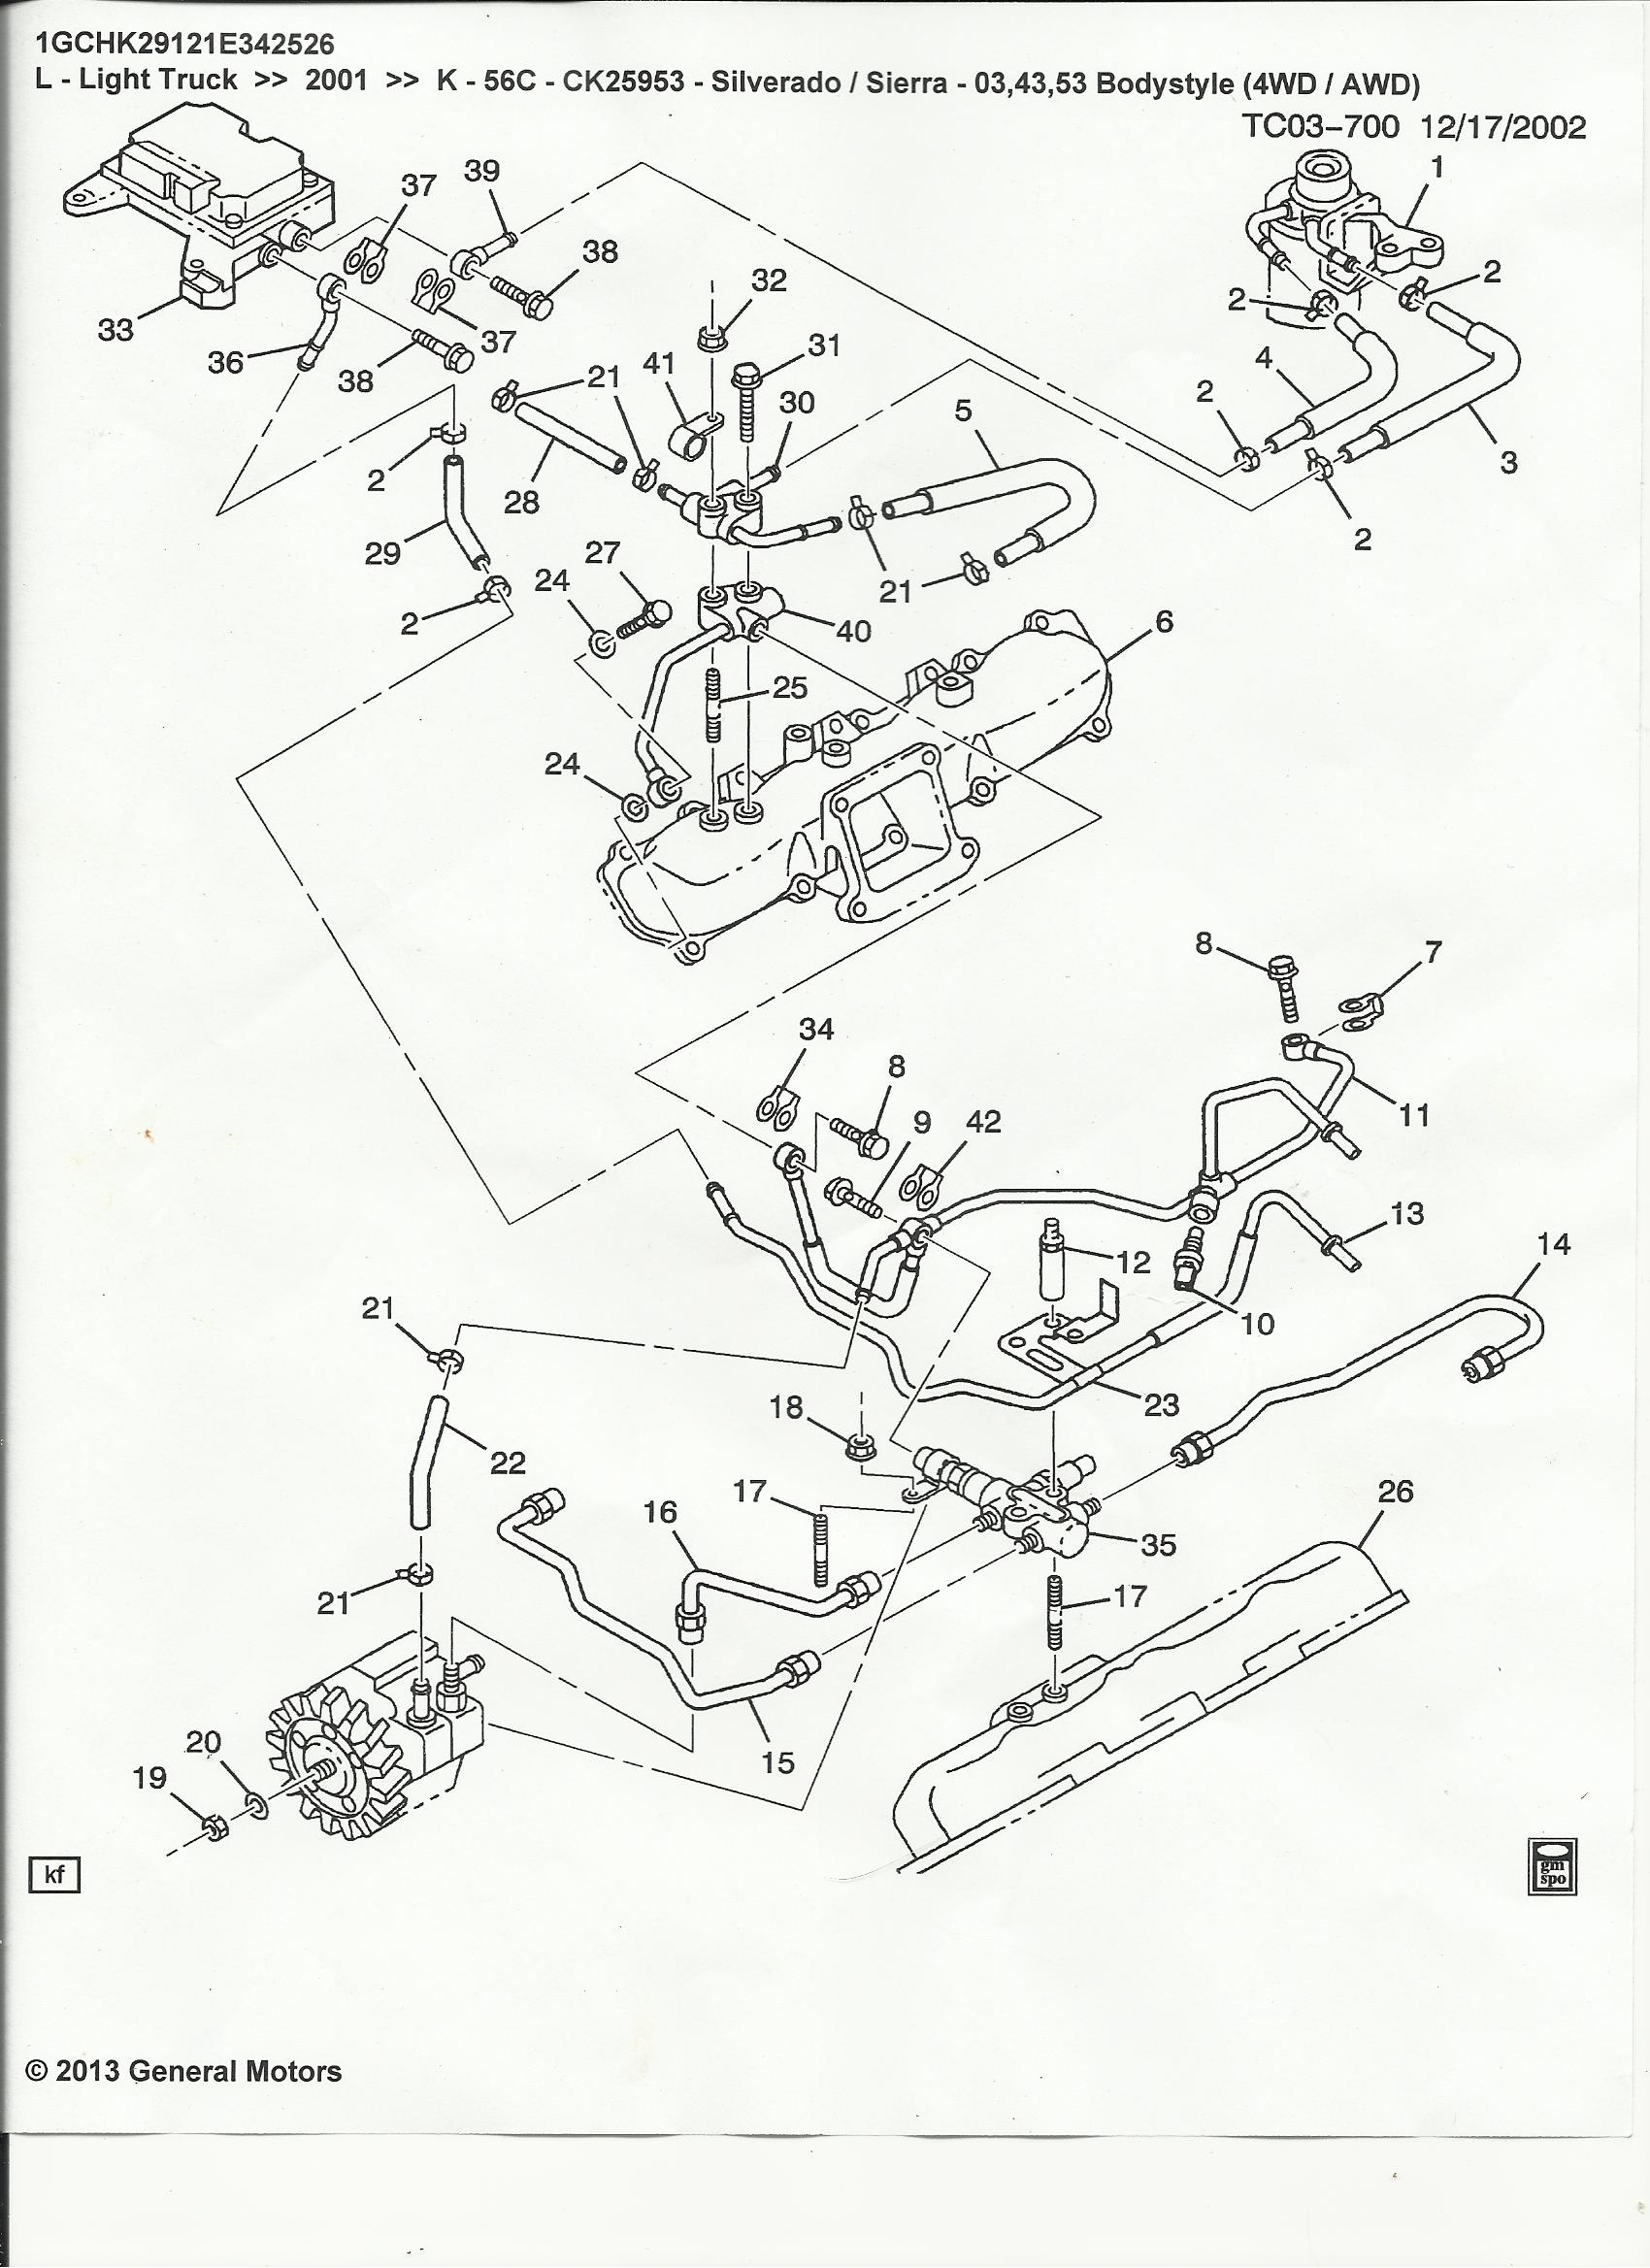 1992 Silverado Fuel System Diagram FULL HD Version System